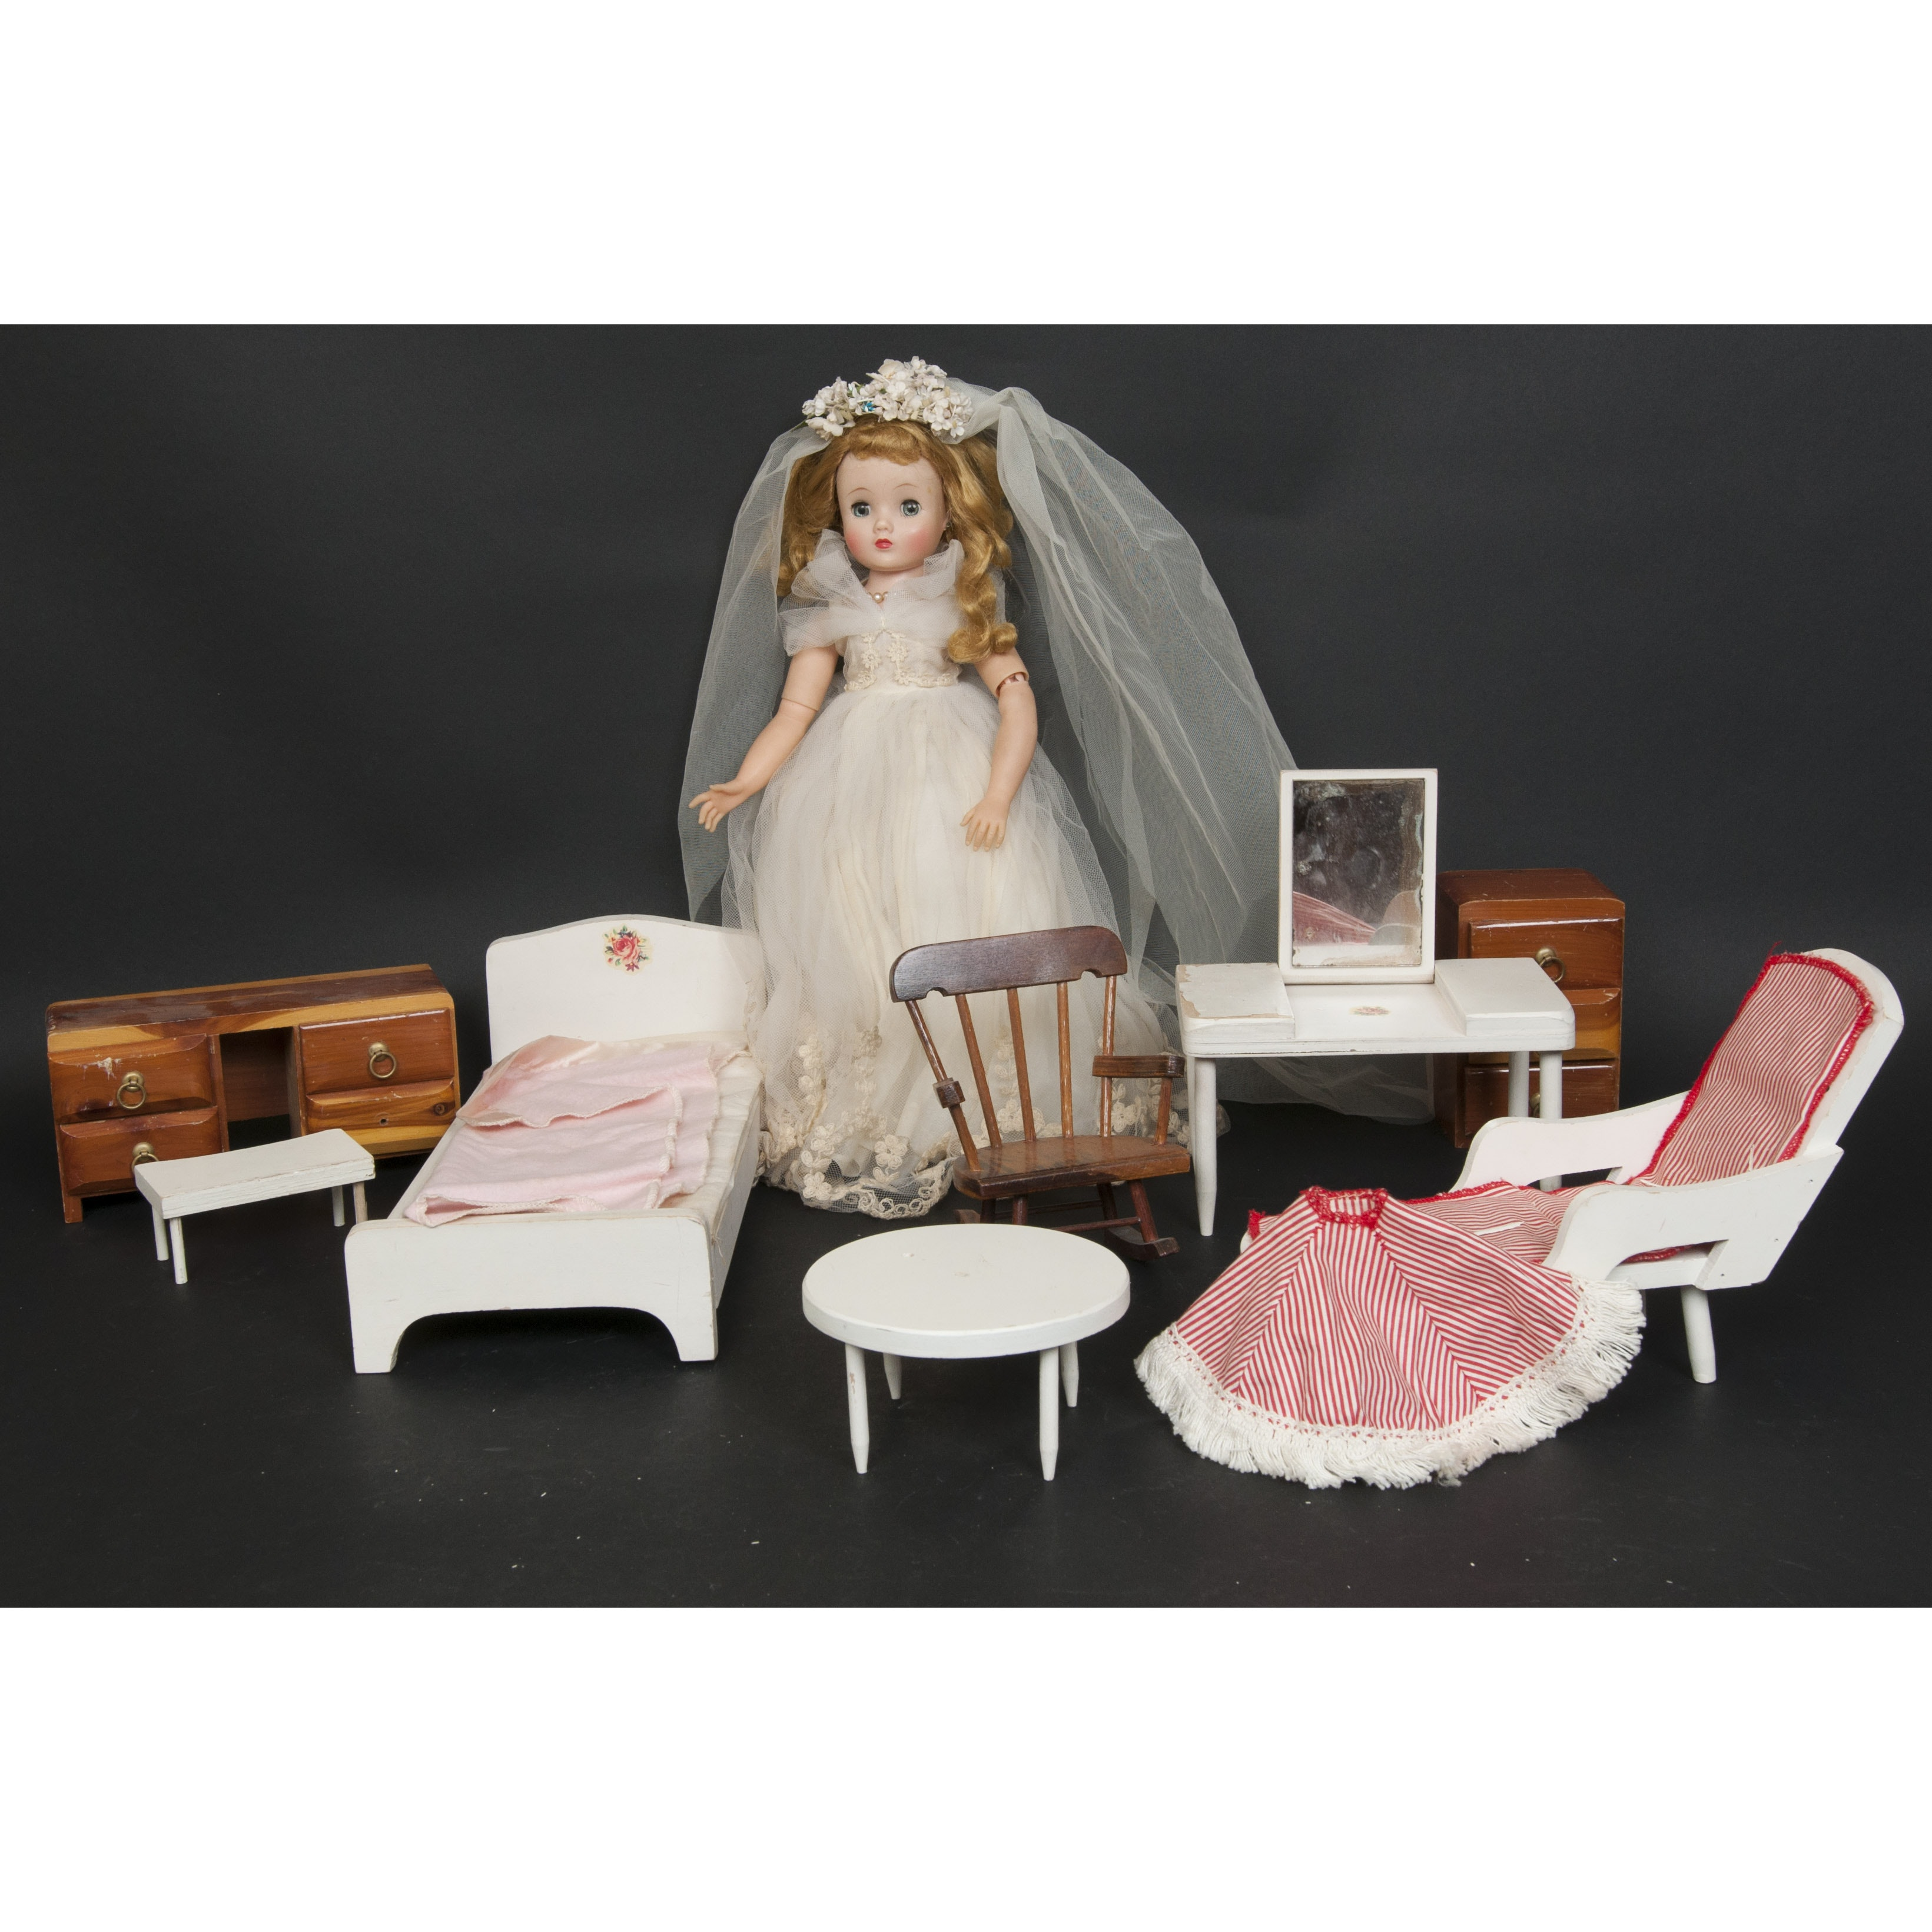 Vintage Doll House Furniture And Madame Alexander Doll ...